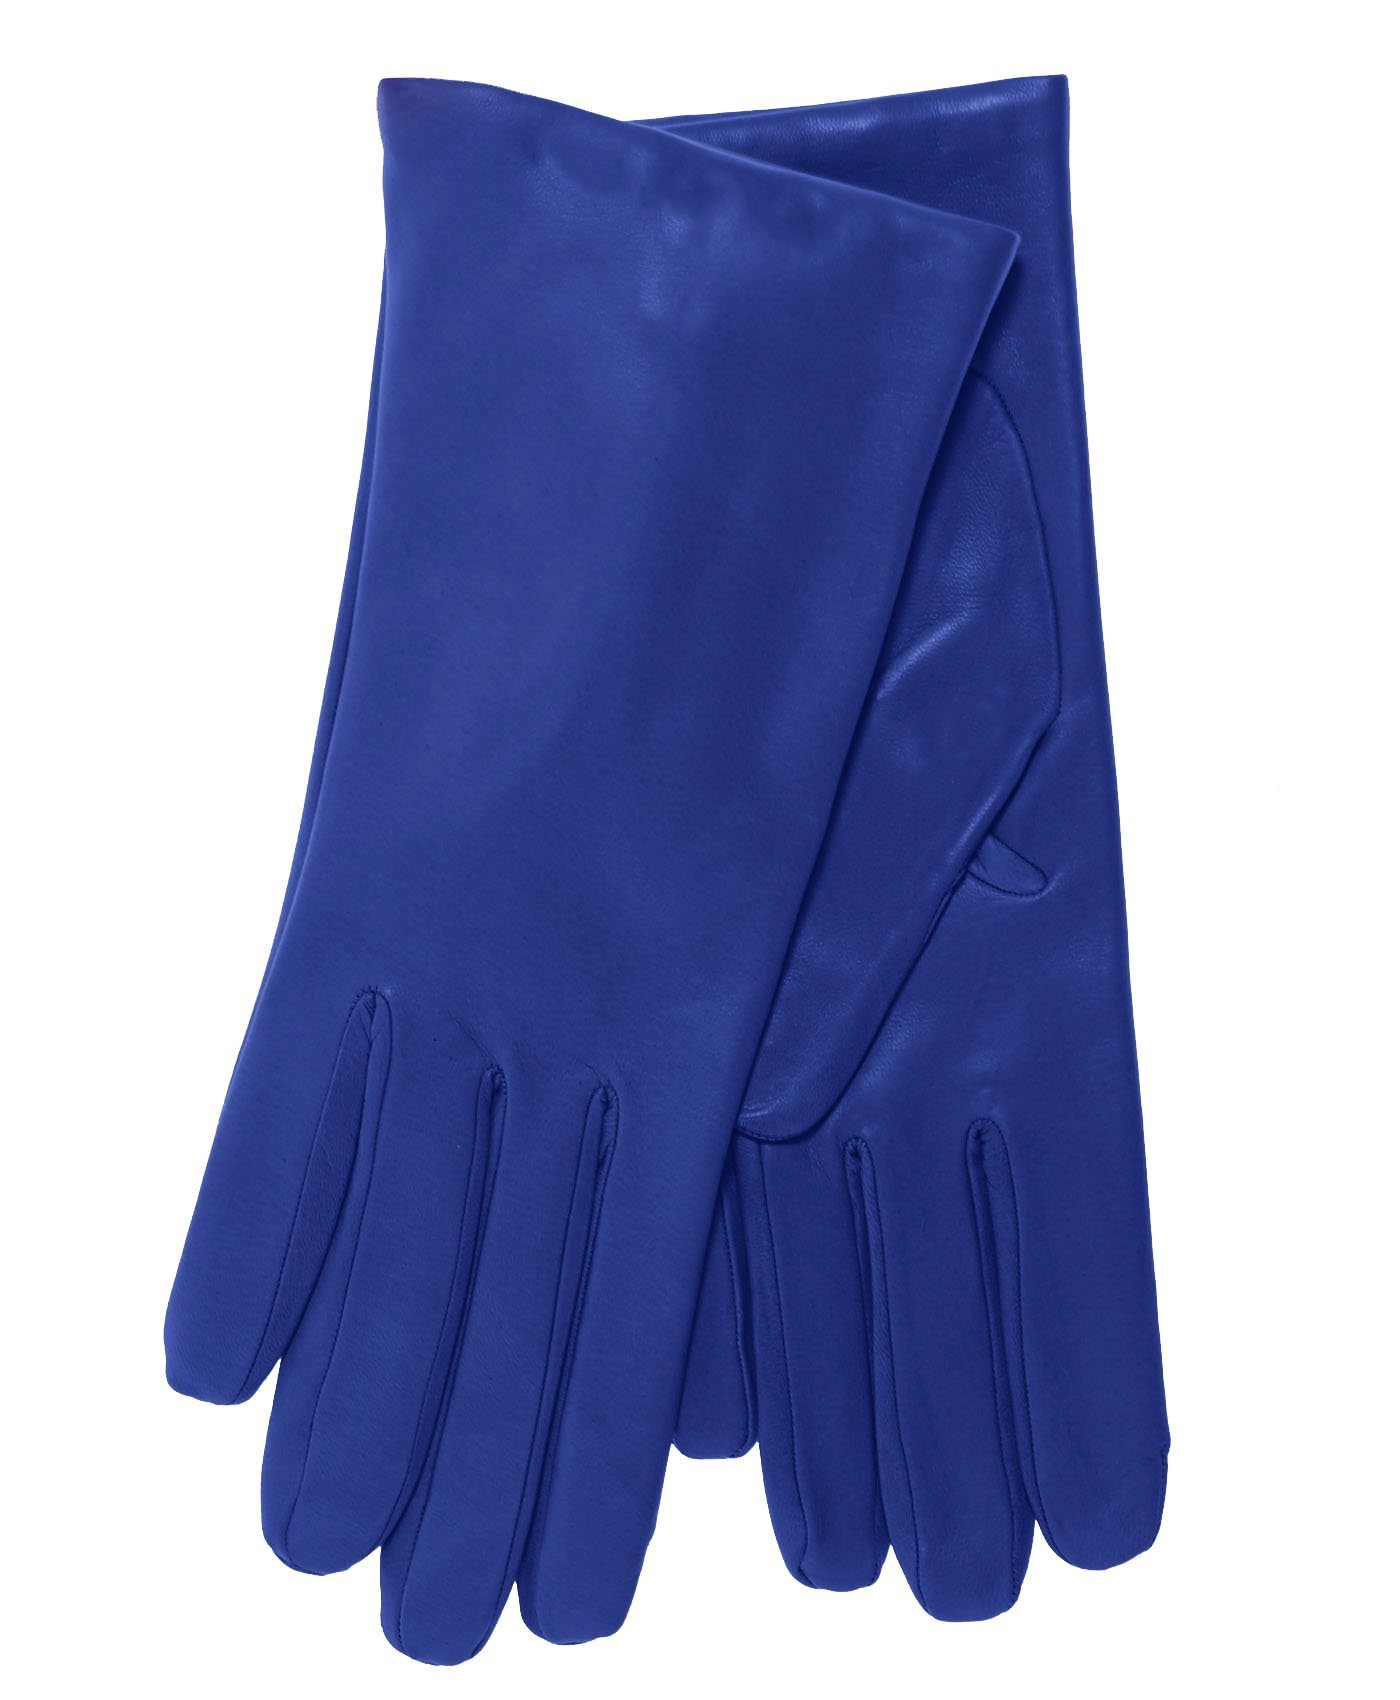 Fratelli Orsini Everyday Women's Italian Cashmere Lined Leather Gloves Size 7 Color Heritage Blue